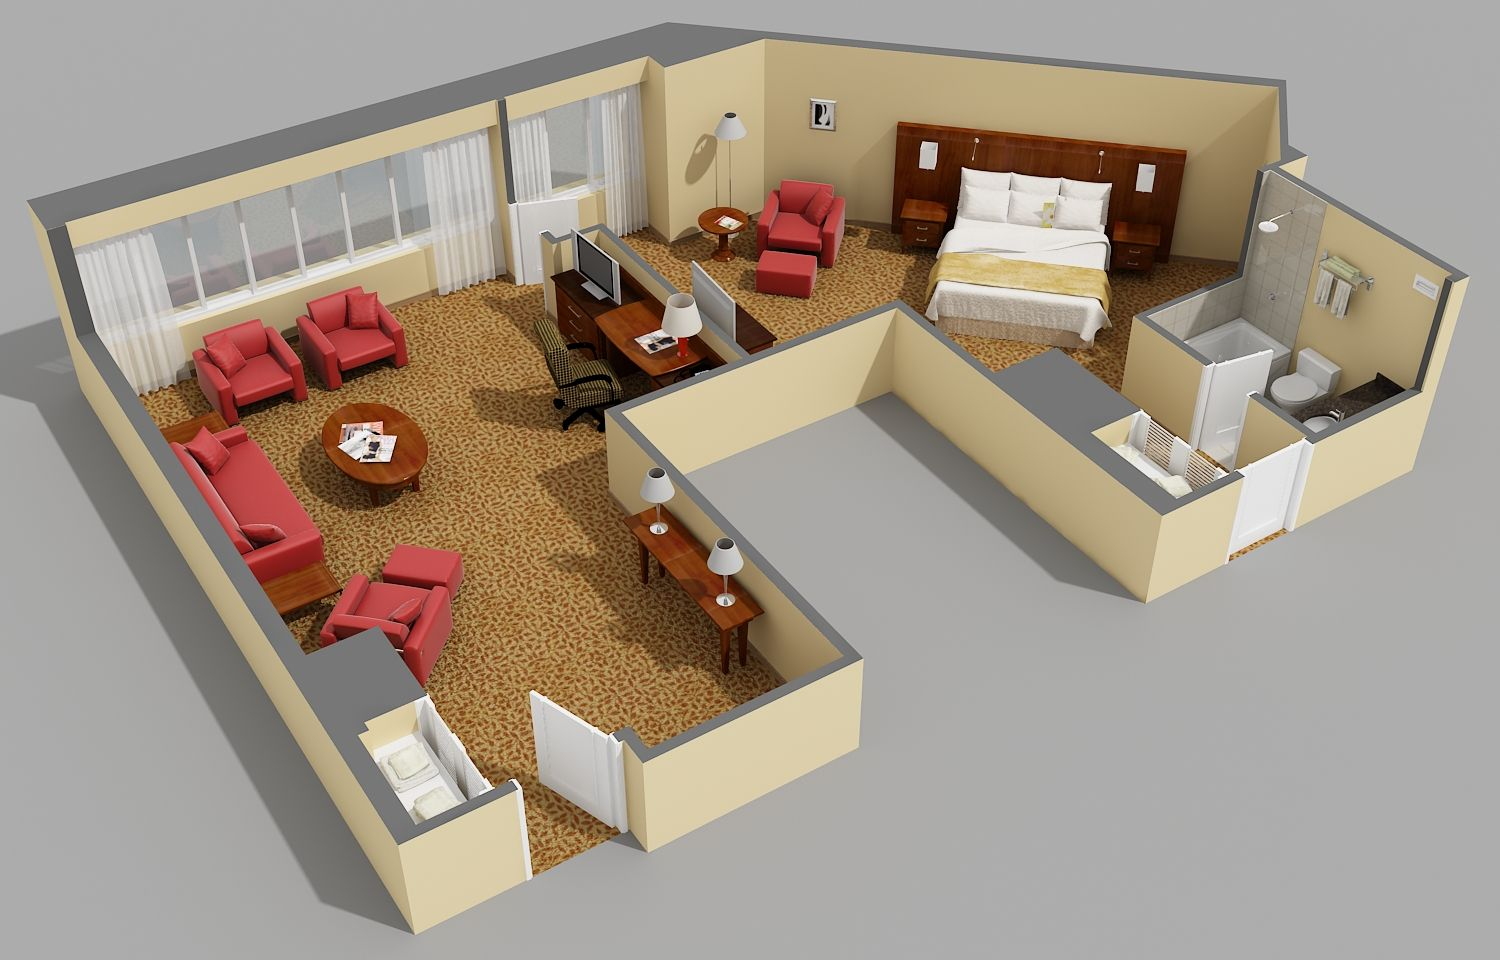 3d Floor Plans Used For Hotel Marketing Plans